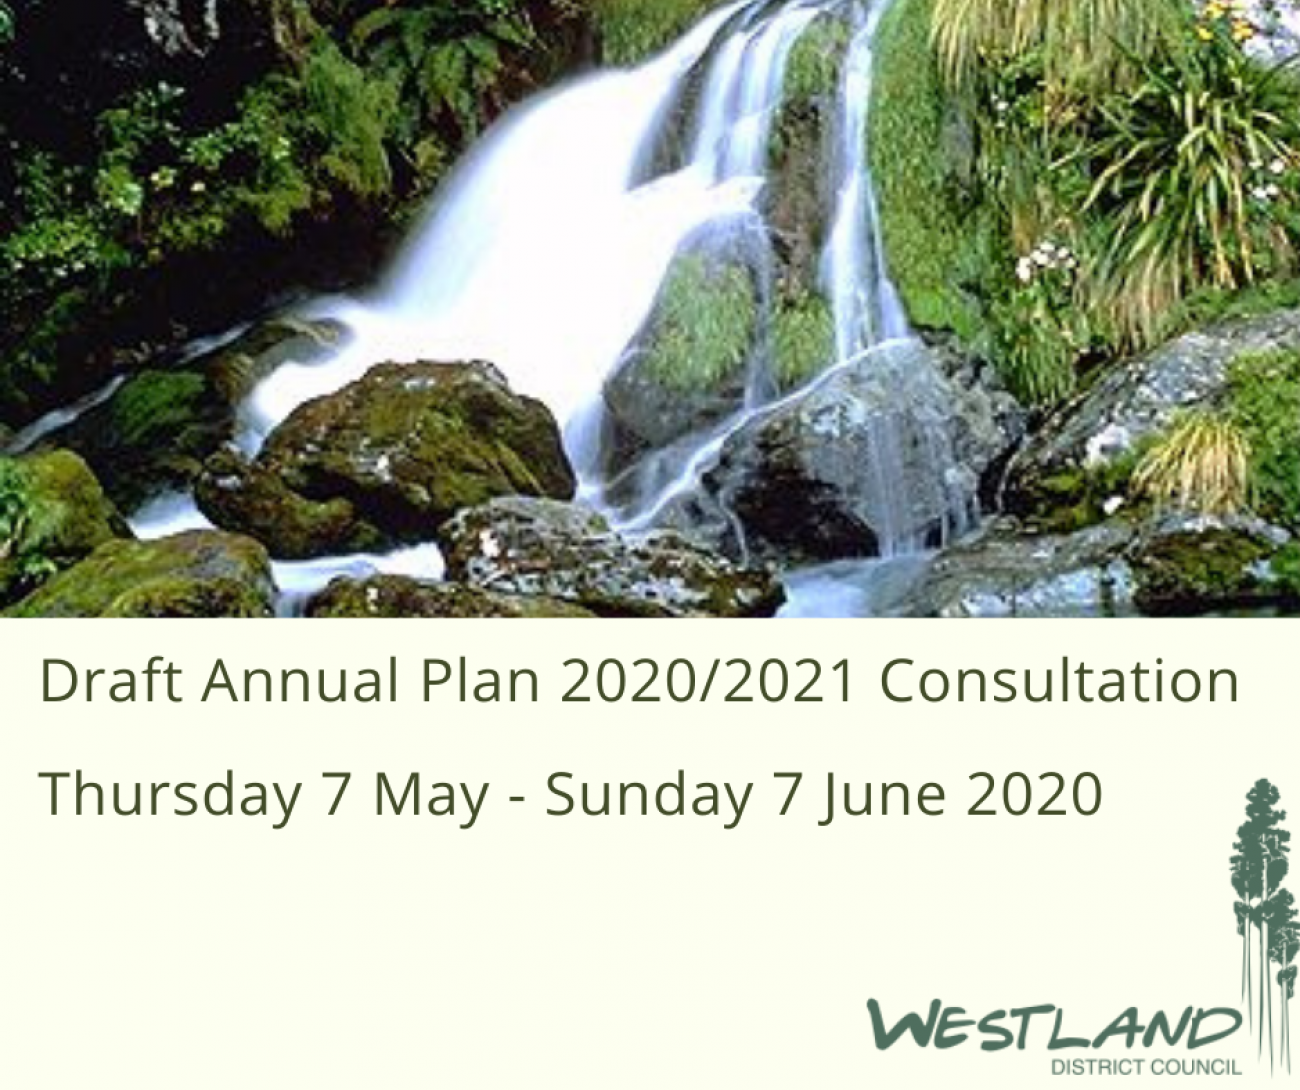 Draft Annual Plan 2020/2021 Consultation open